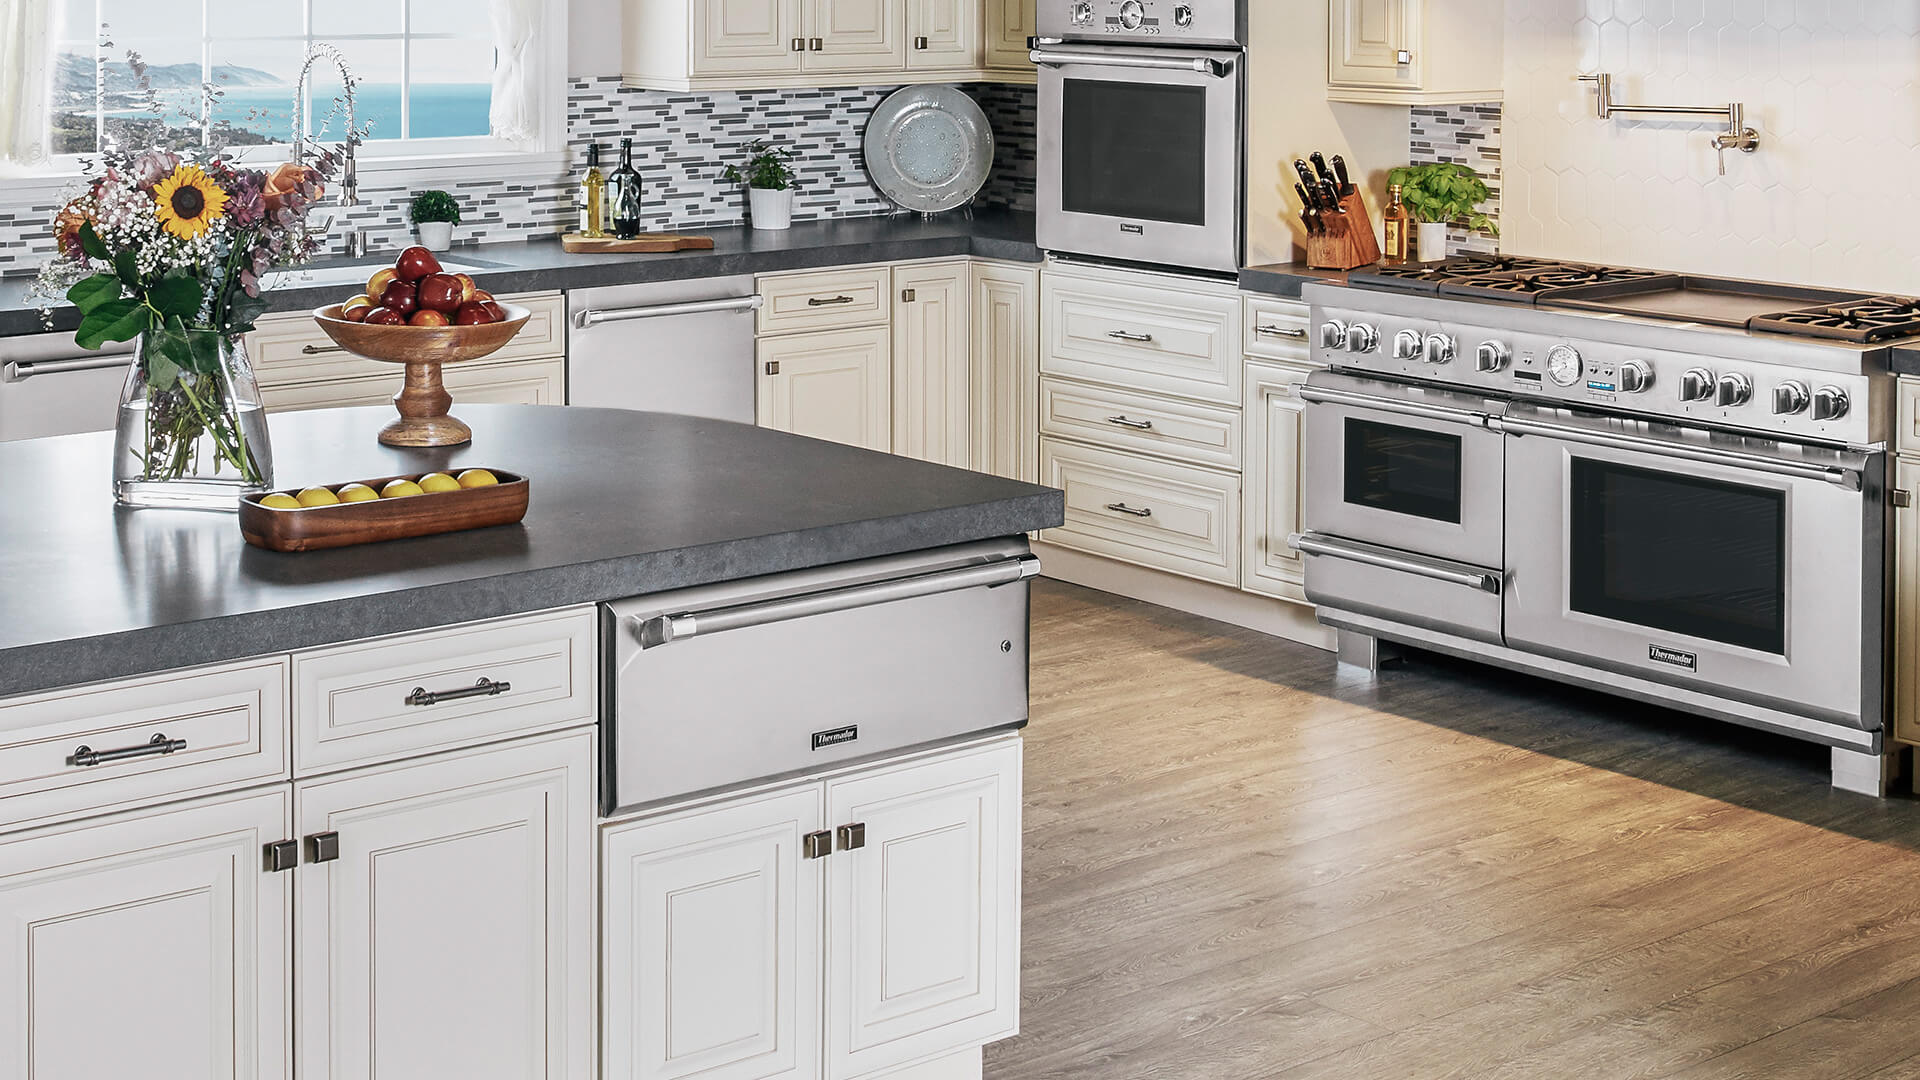 Thermador Authorized Appliance Service   Thermador Repair Service